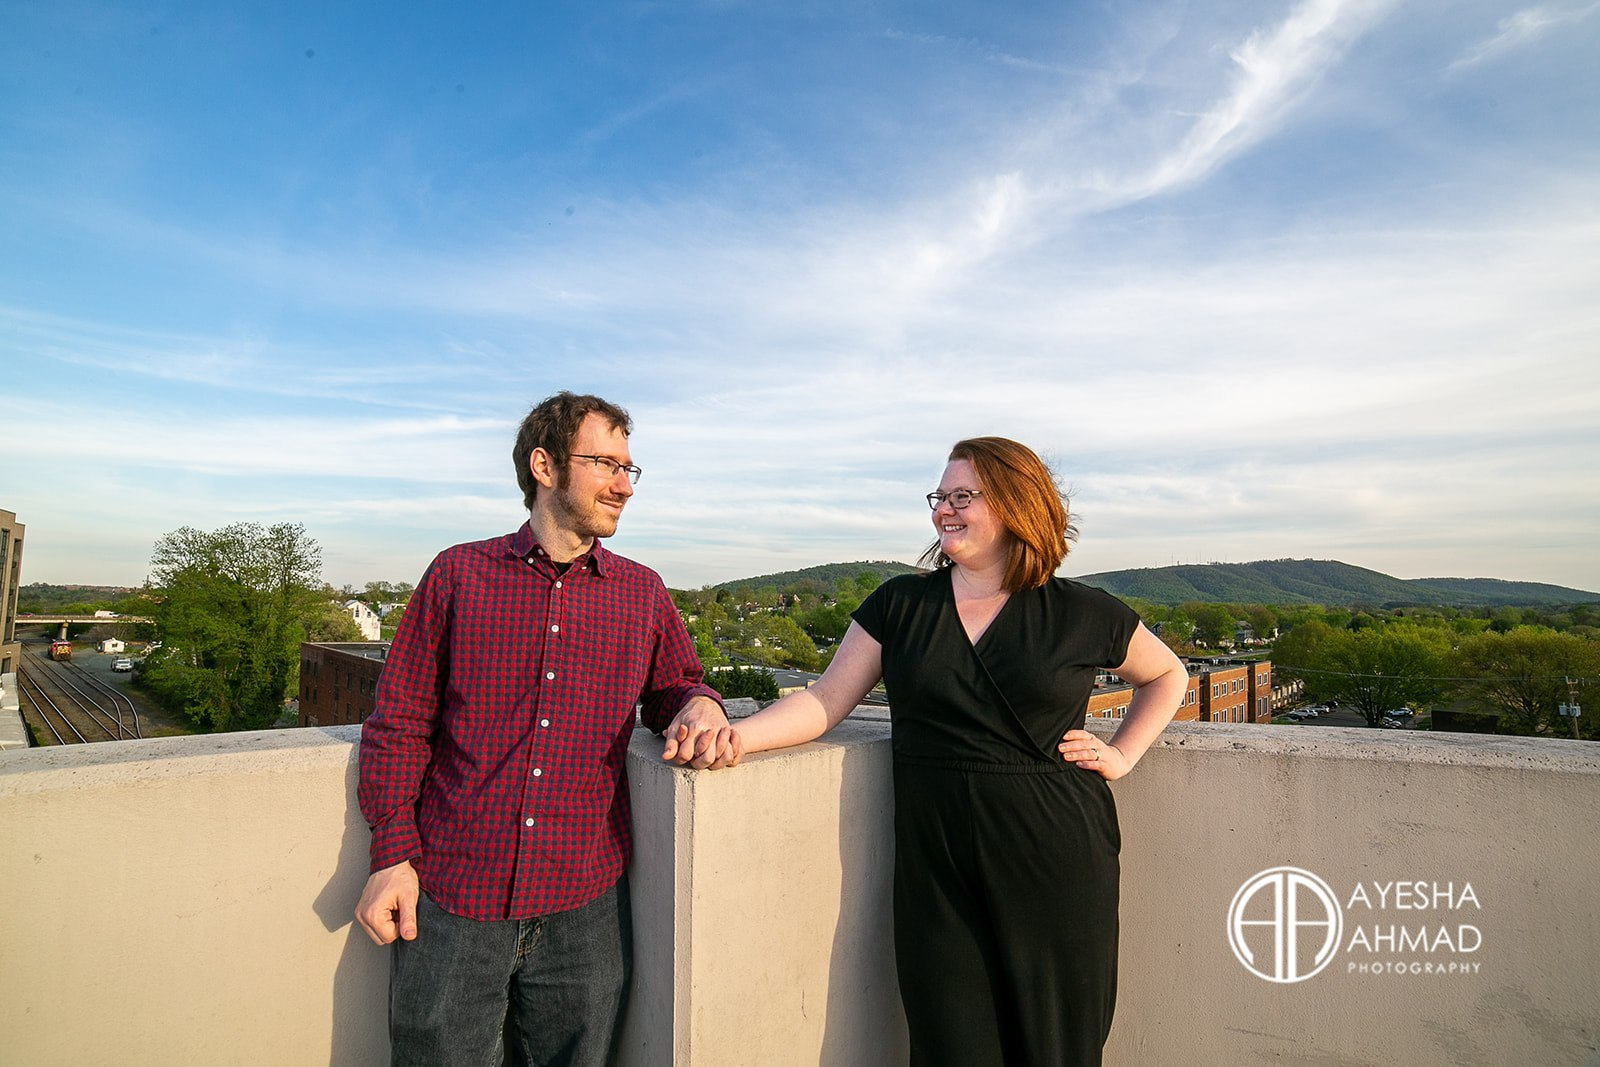 Jen and cameron hold hands with Carter Mountain and Monticello in background during couples session in Downtown Charlottesville Virginia Ayesha Ahmad Photography